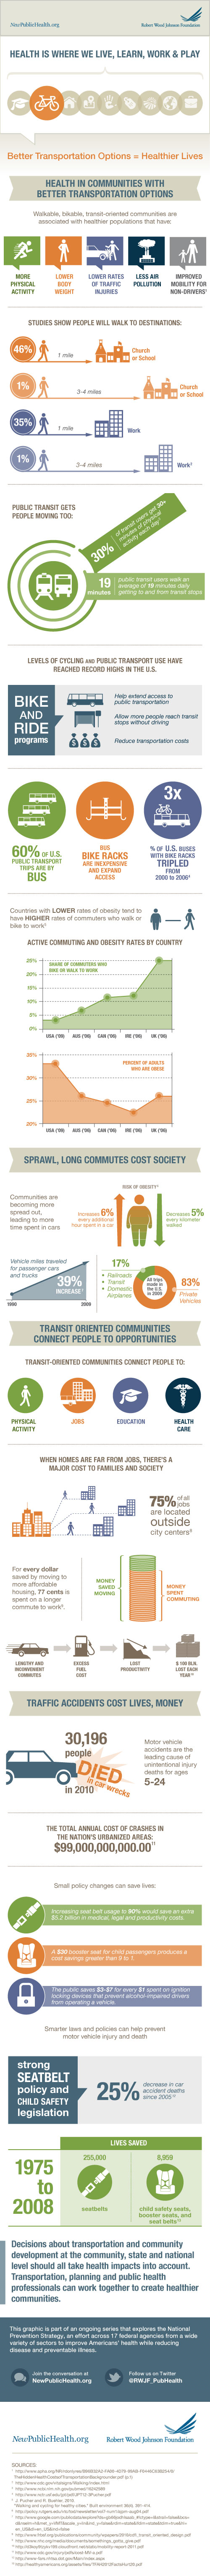 Infographic: Public Transportation is Better for Your Health and the Environment!